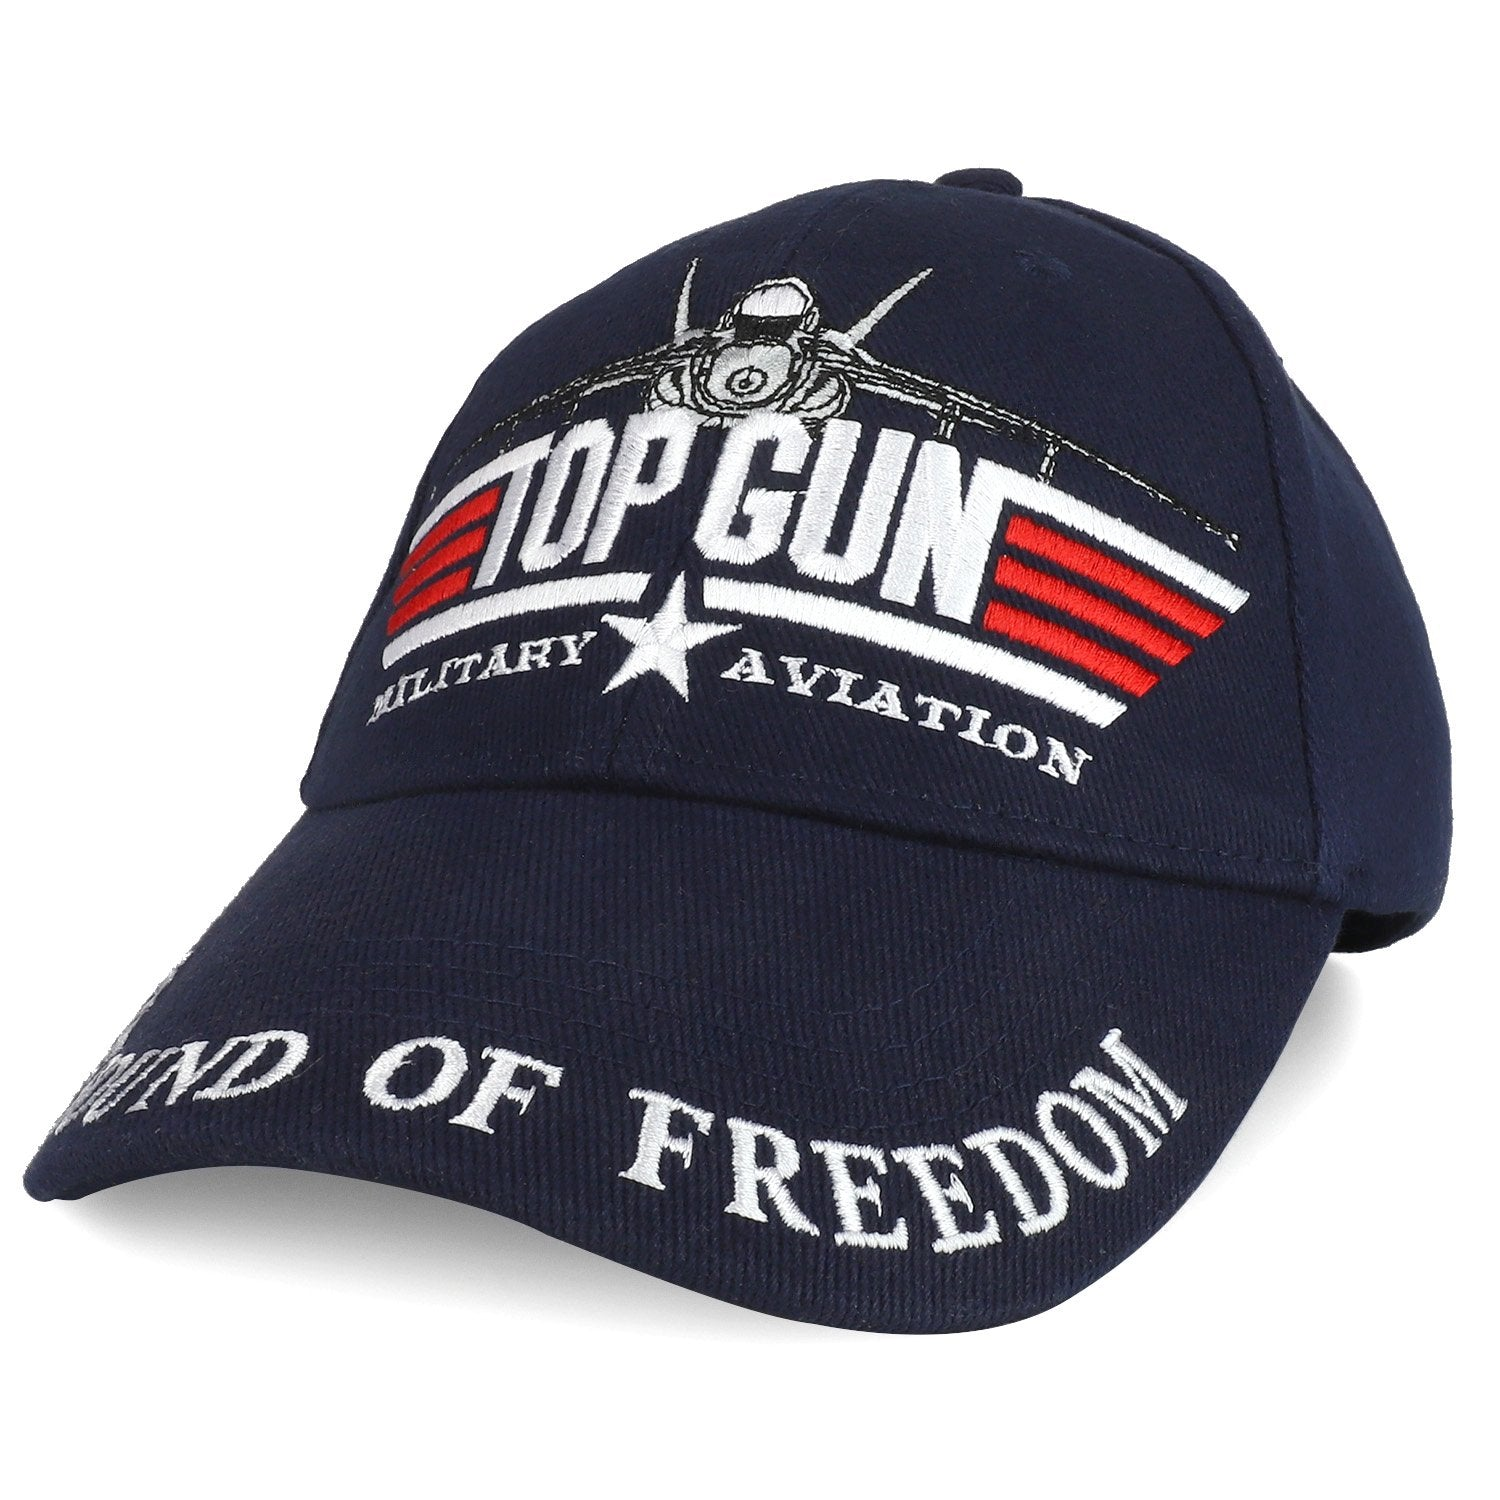 f497d3c70b2f3 Armycrew US Navy Top Gun Military Aviation Embroidered Adjustable Baseball  Cap